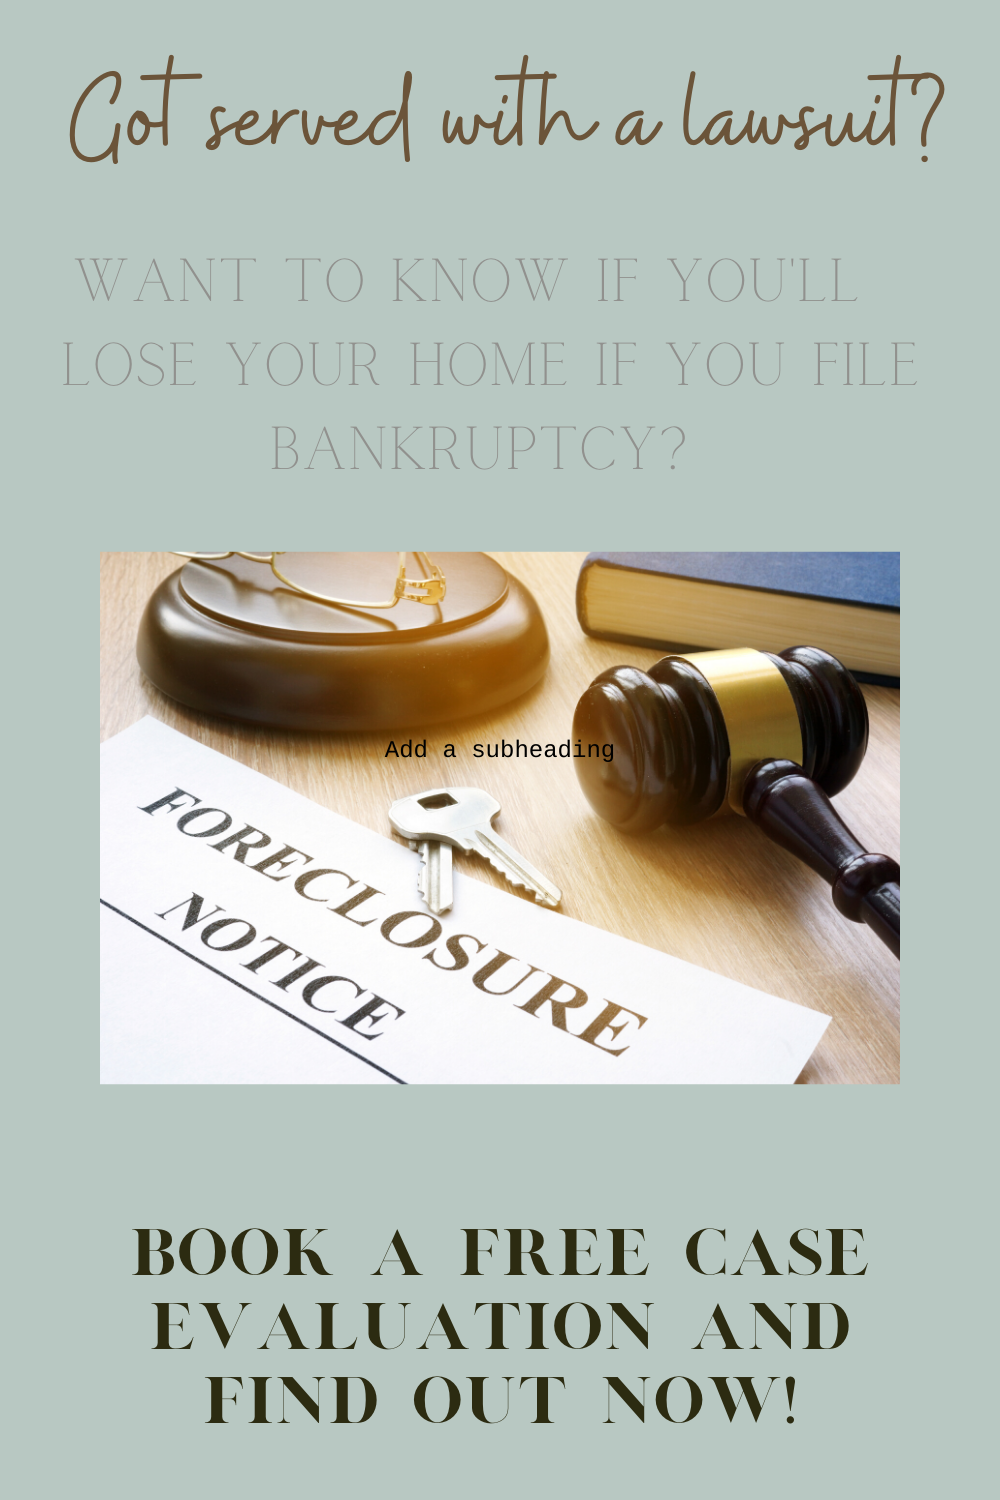 Have You Been Served With A Lawsuit In 2020 Bankruptcy Budget App In Law Suite